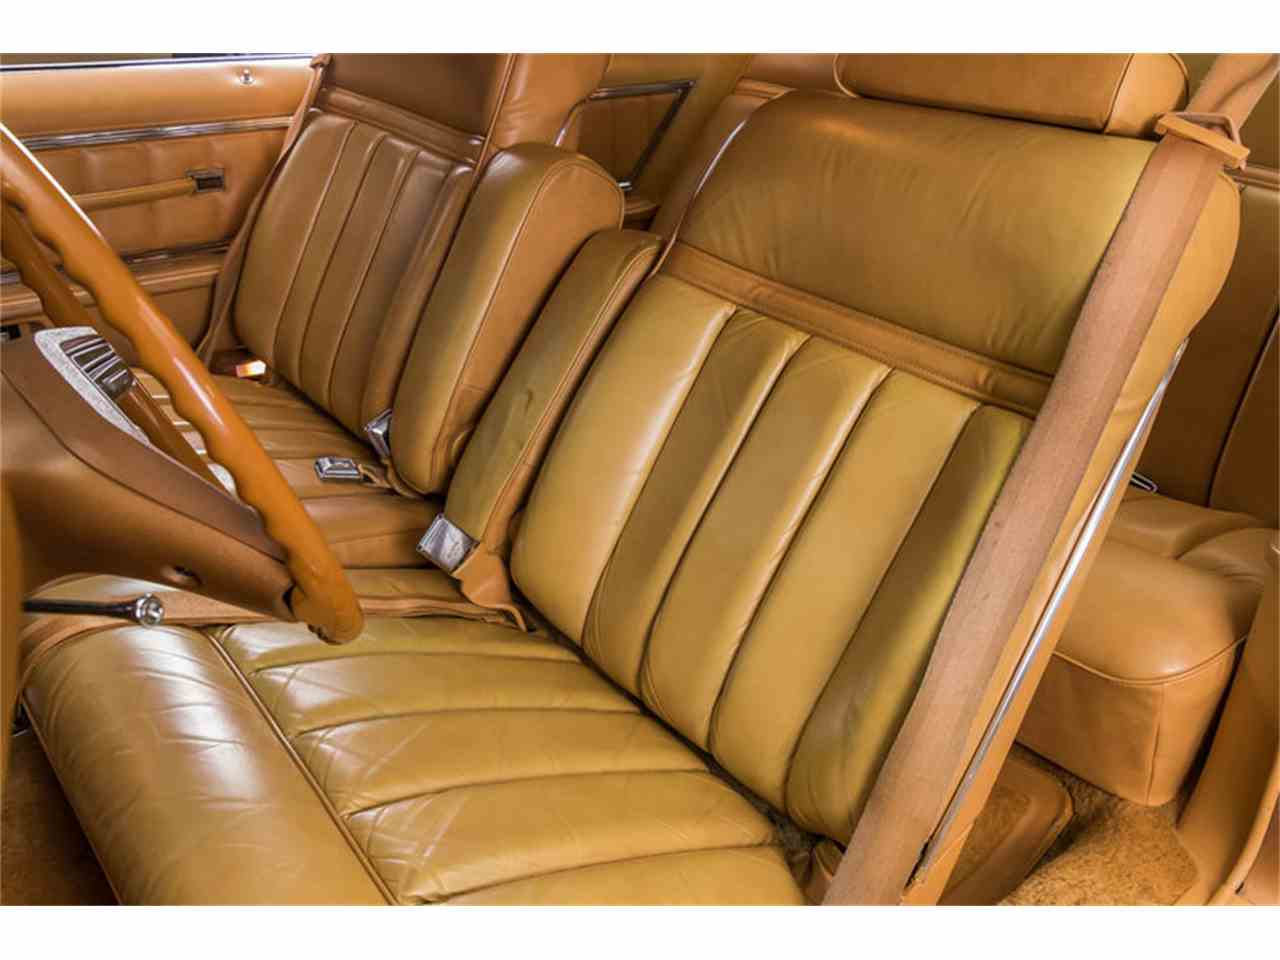 1977 Lincoln Continental Mark V For Sale Classiccars Com